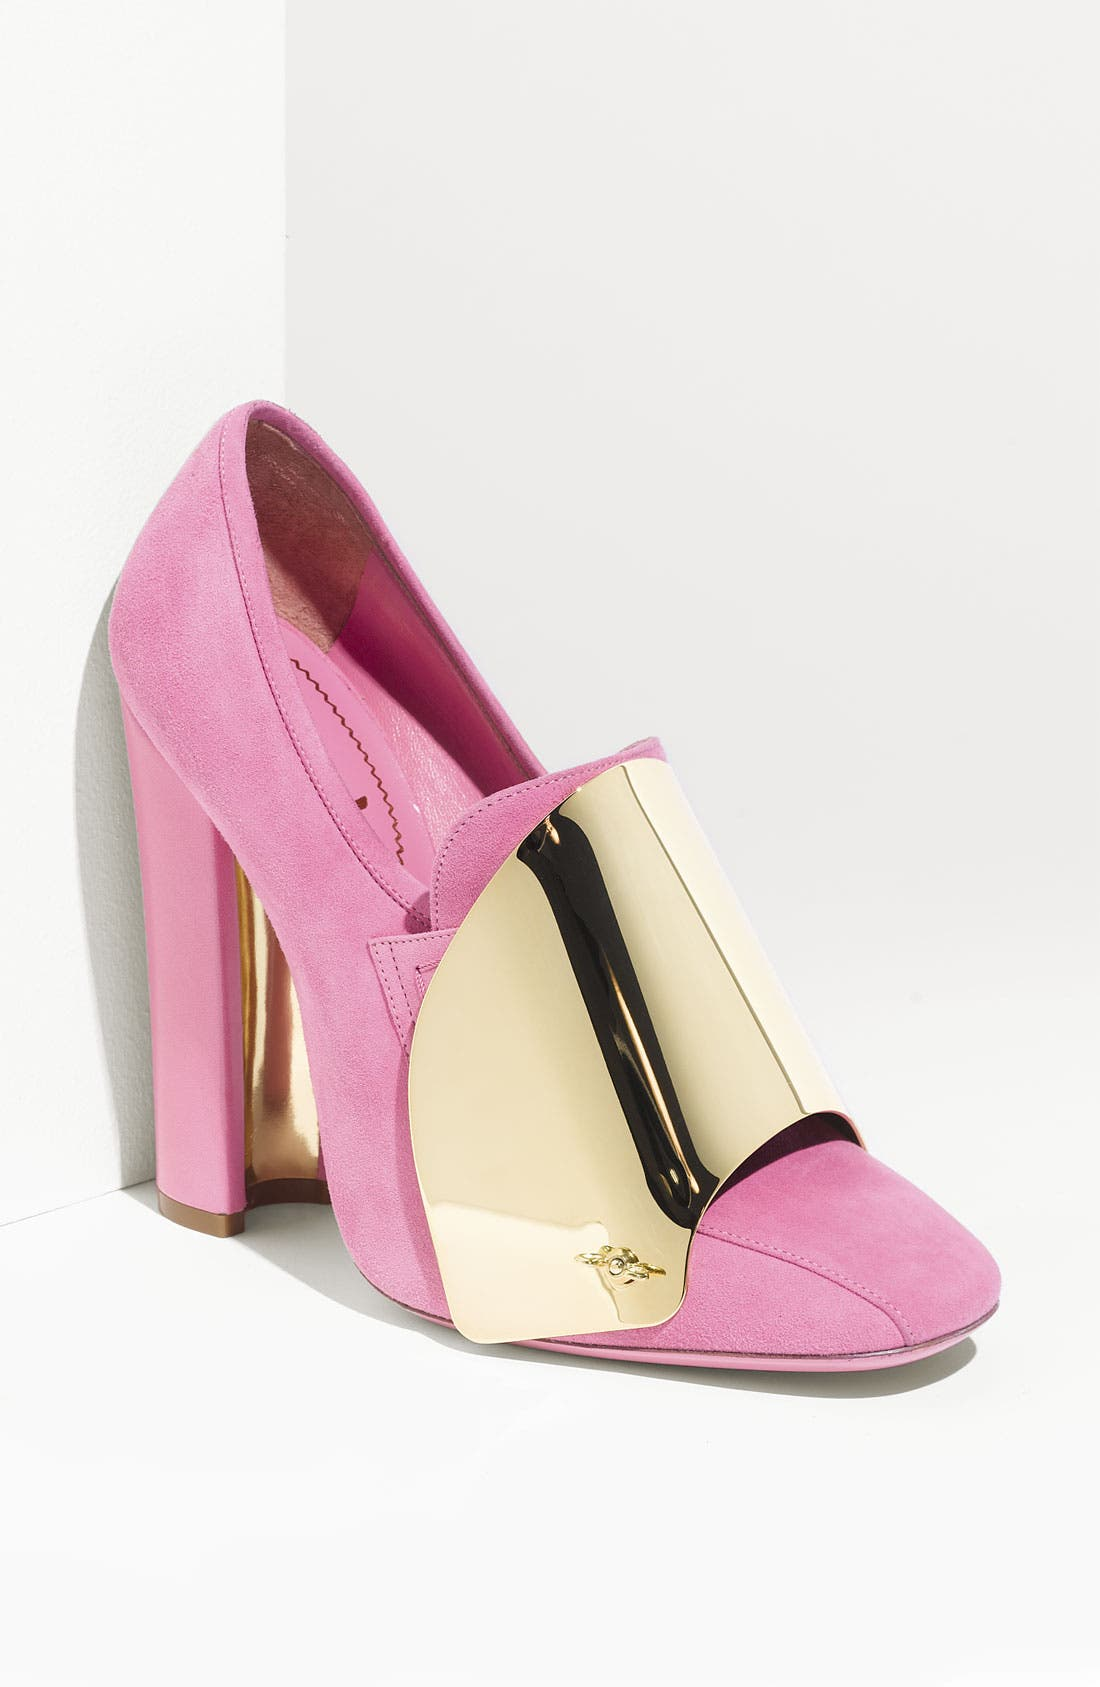 Main Image - Yves Saint Laurent 'Shield' Loafer Pump